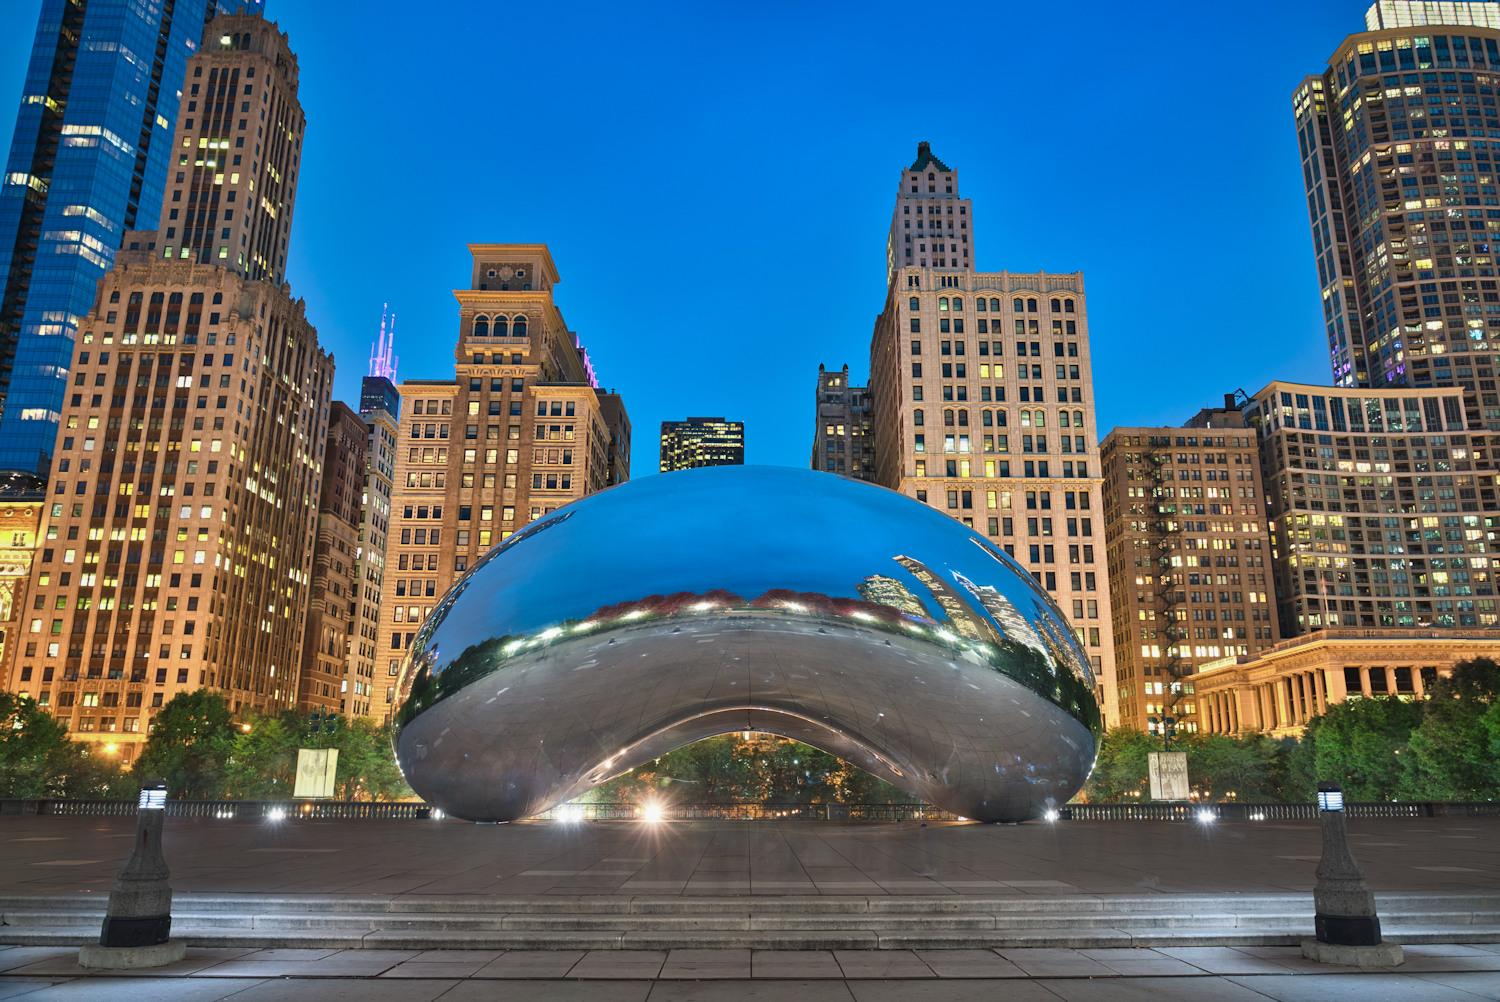 The bean at Chicago Institute of Art